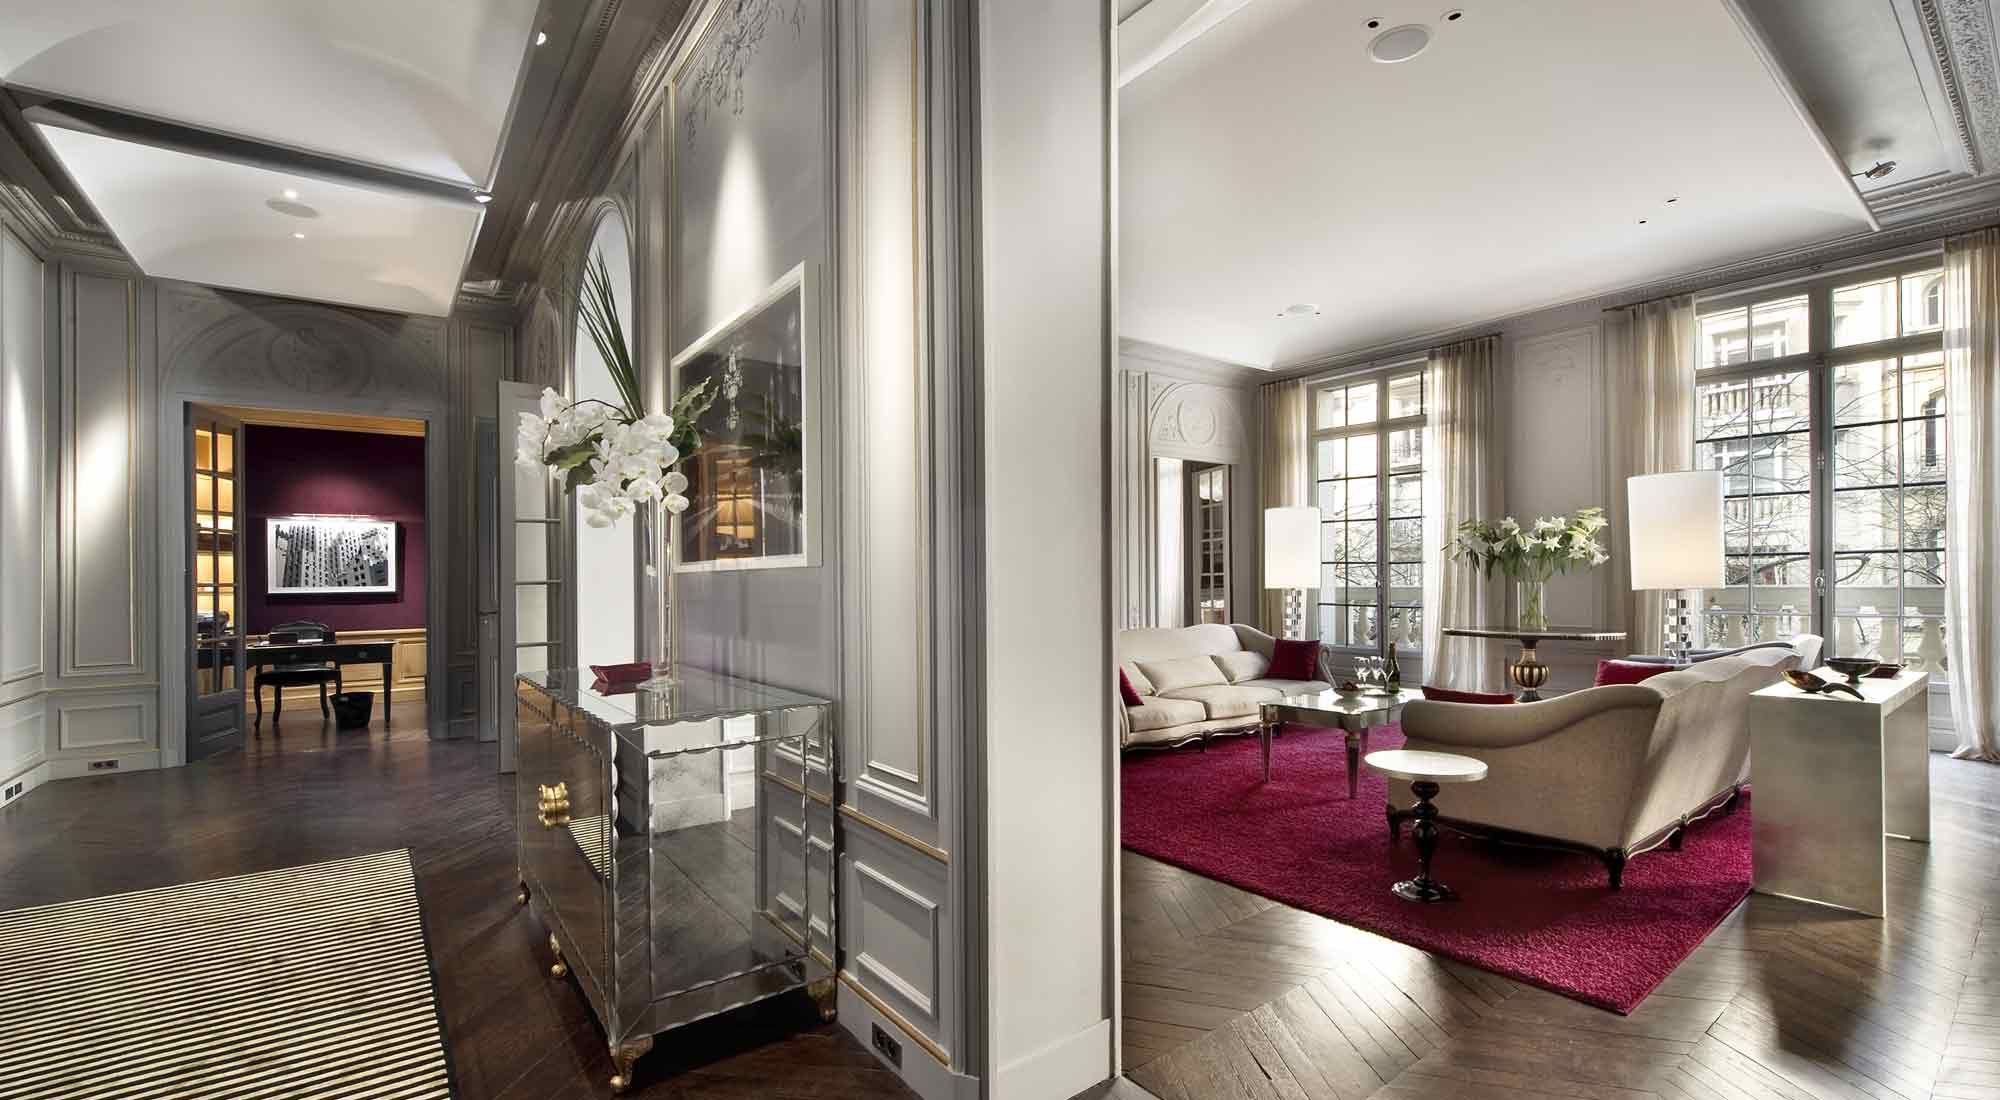 Paris Apartments In Luxury Apartment Rentals French Motif Pinterest